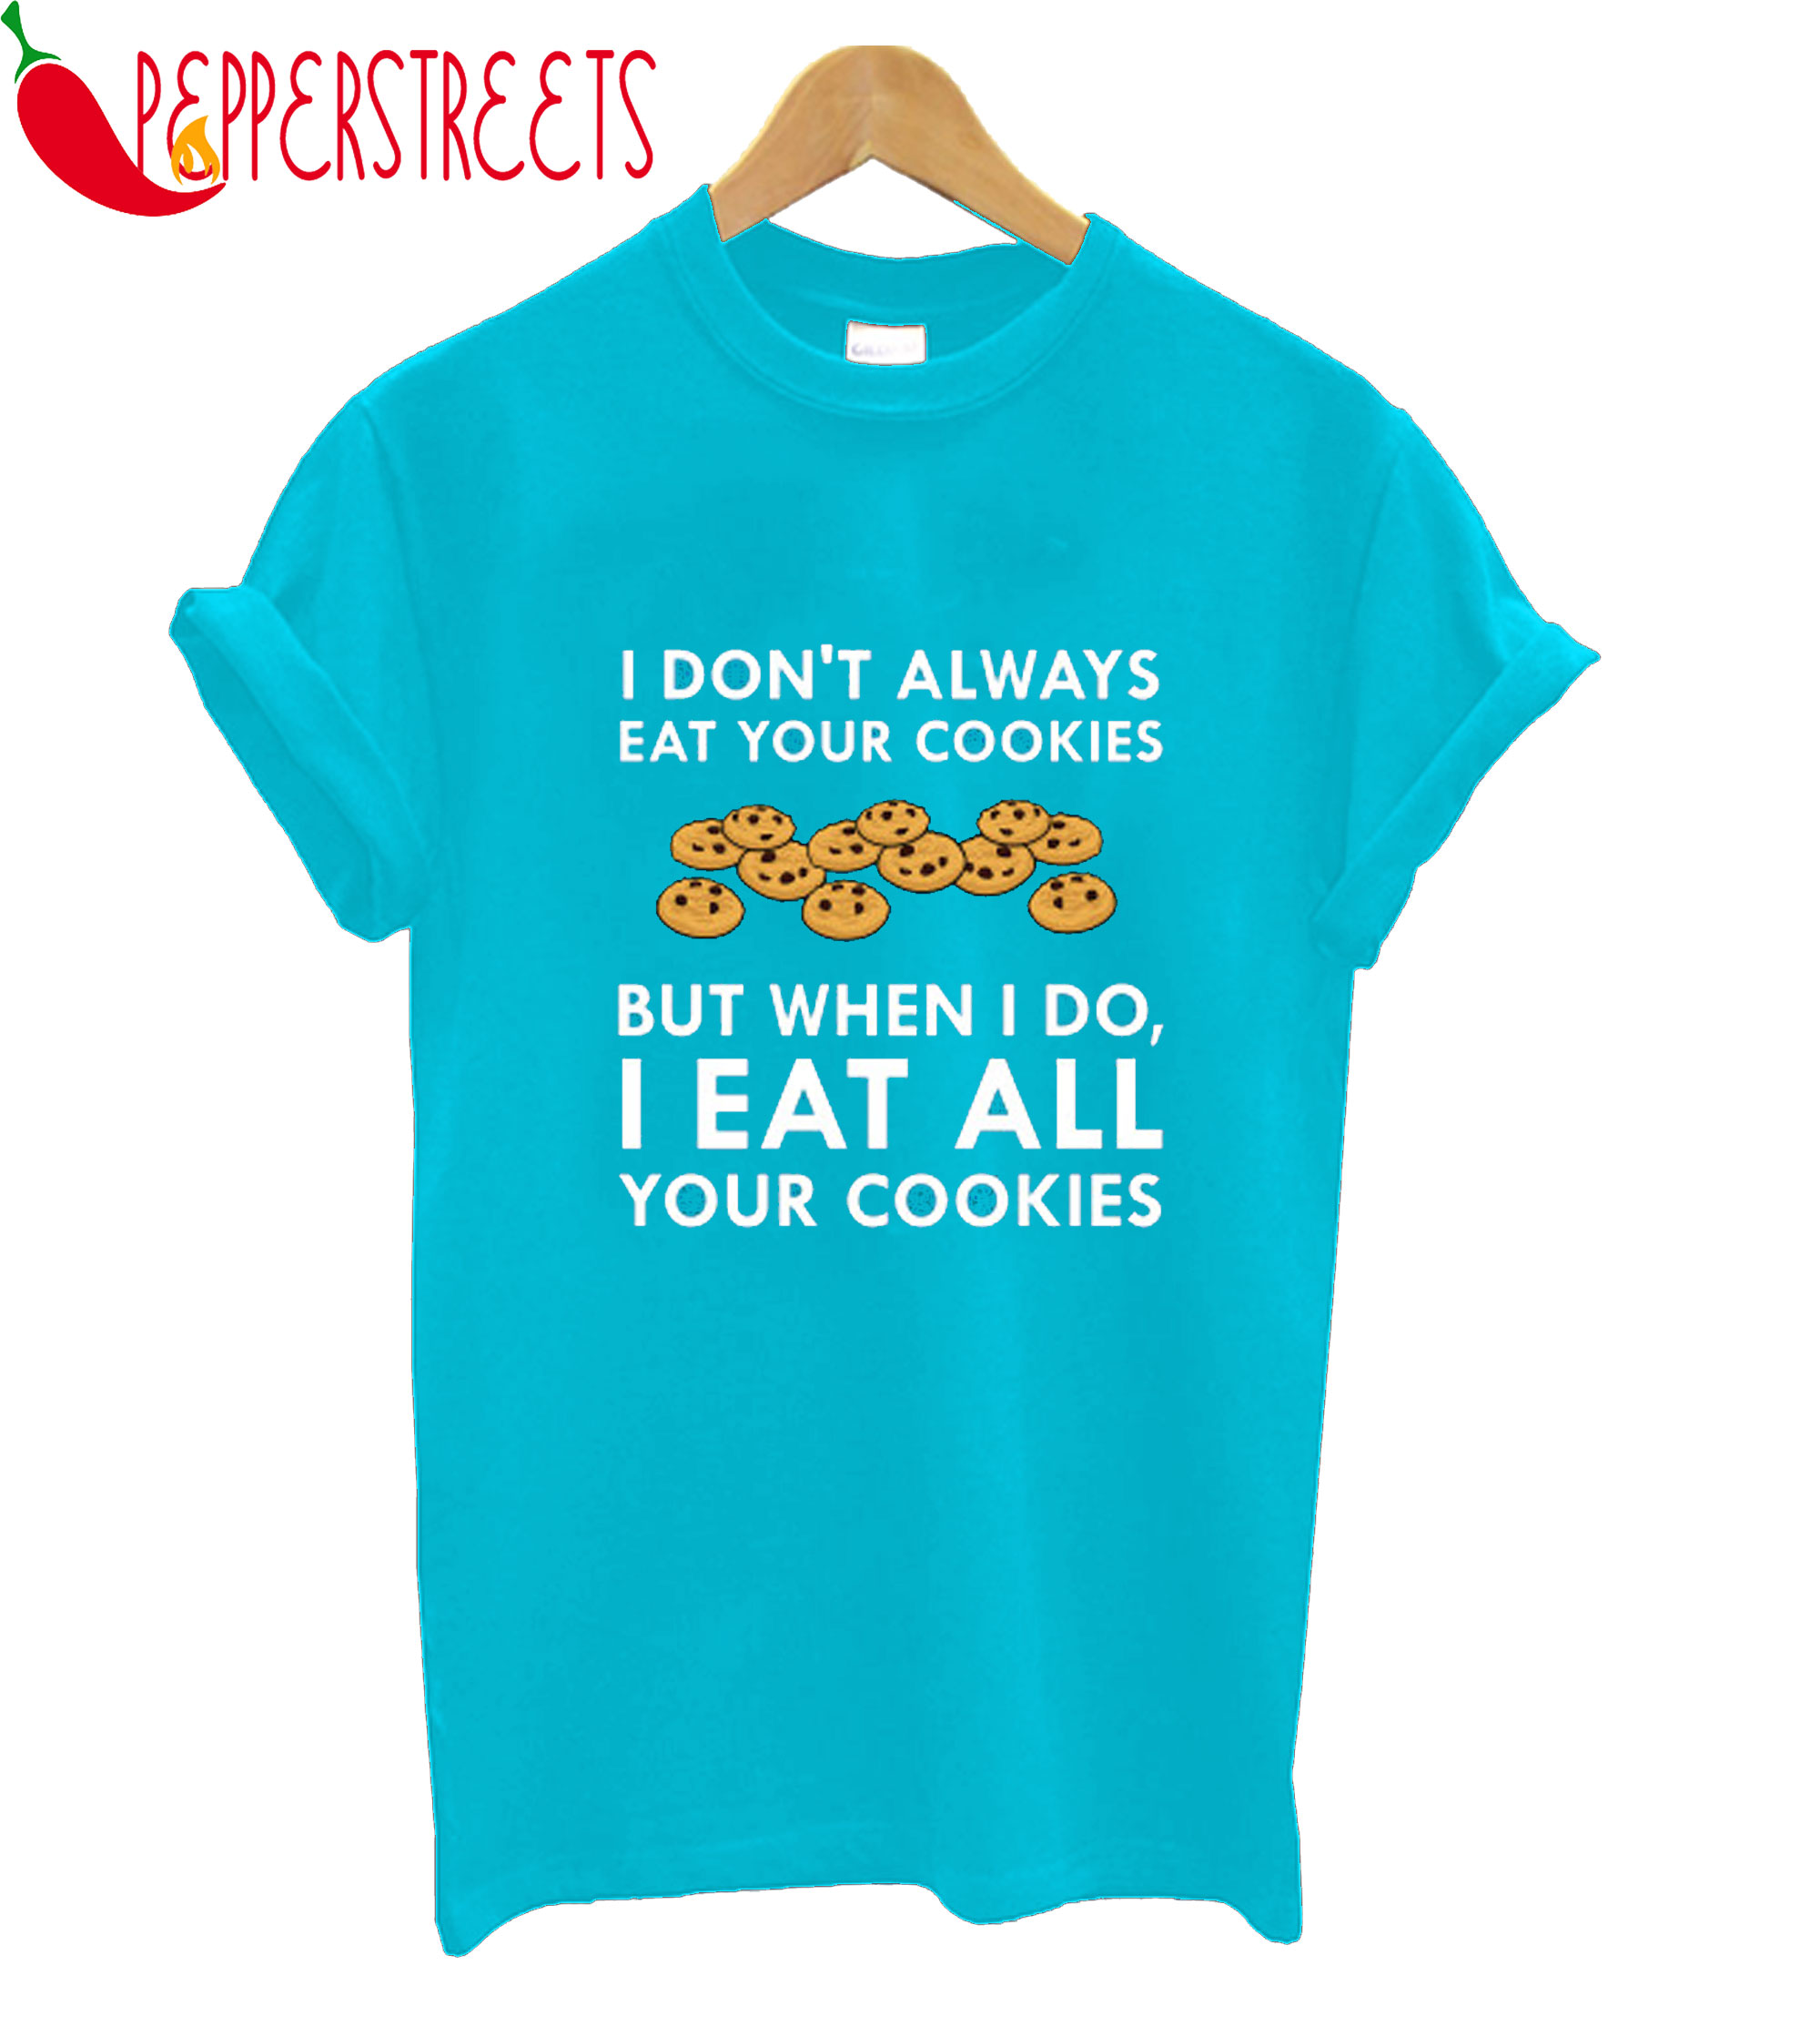 I Eat All Your Cookies T-Shirt